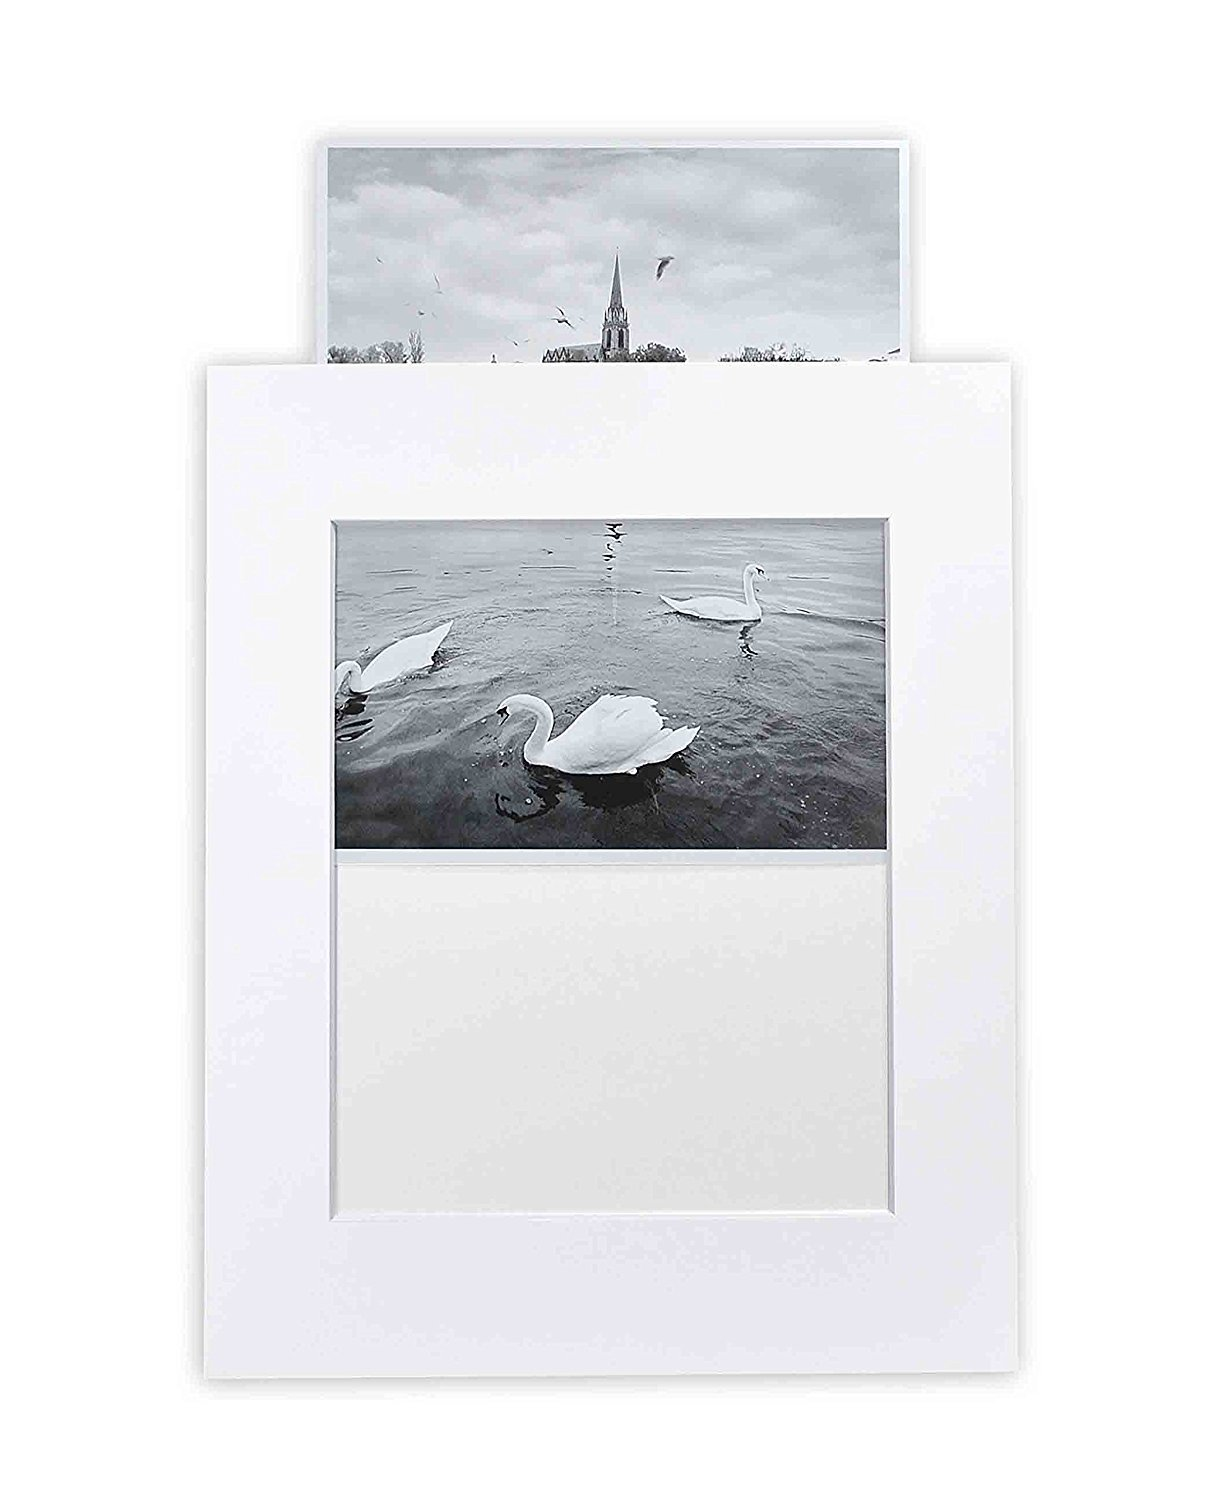 Golden State Art, Acid-Free Cardboard Frames,Pack of 10 White 11x14 Slip in Mats for 8x10 Photo Pre-Adhesive with Backing Board,Paper Frames for Picture Holder,Includes 10 Clear Bags by Golden State Art